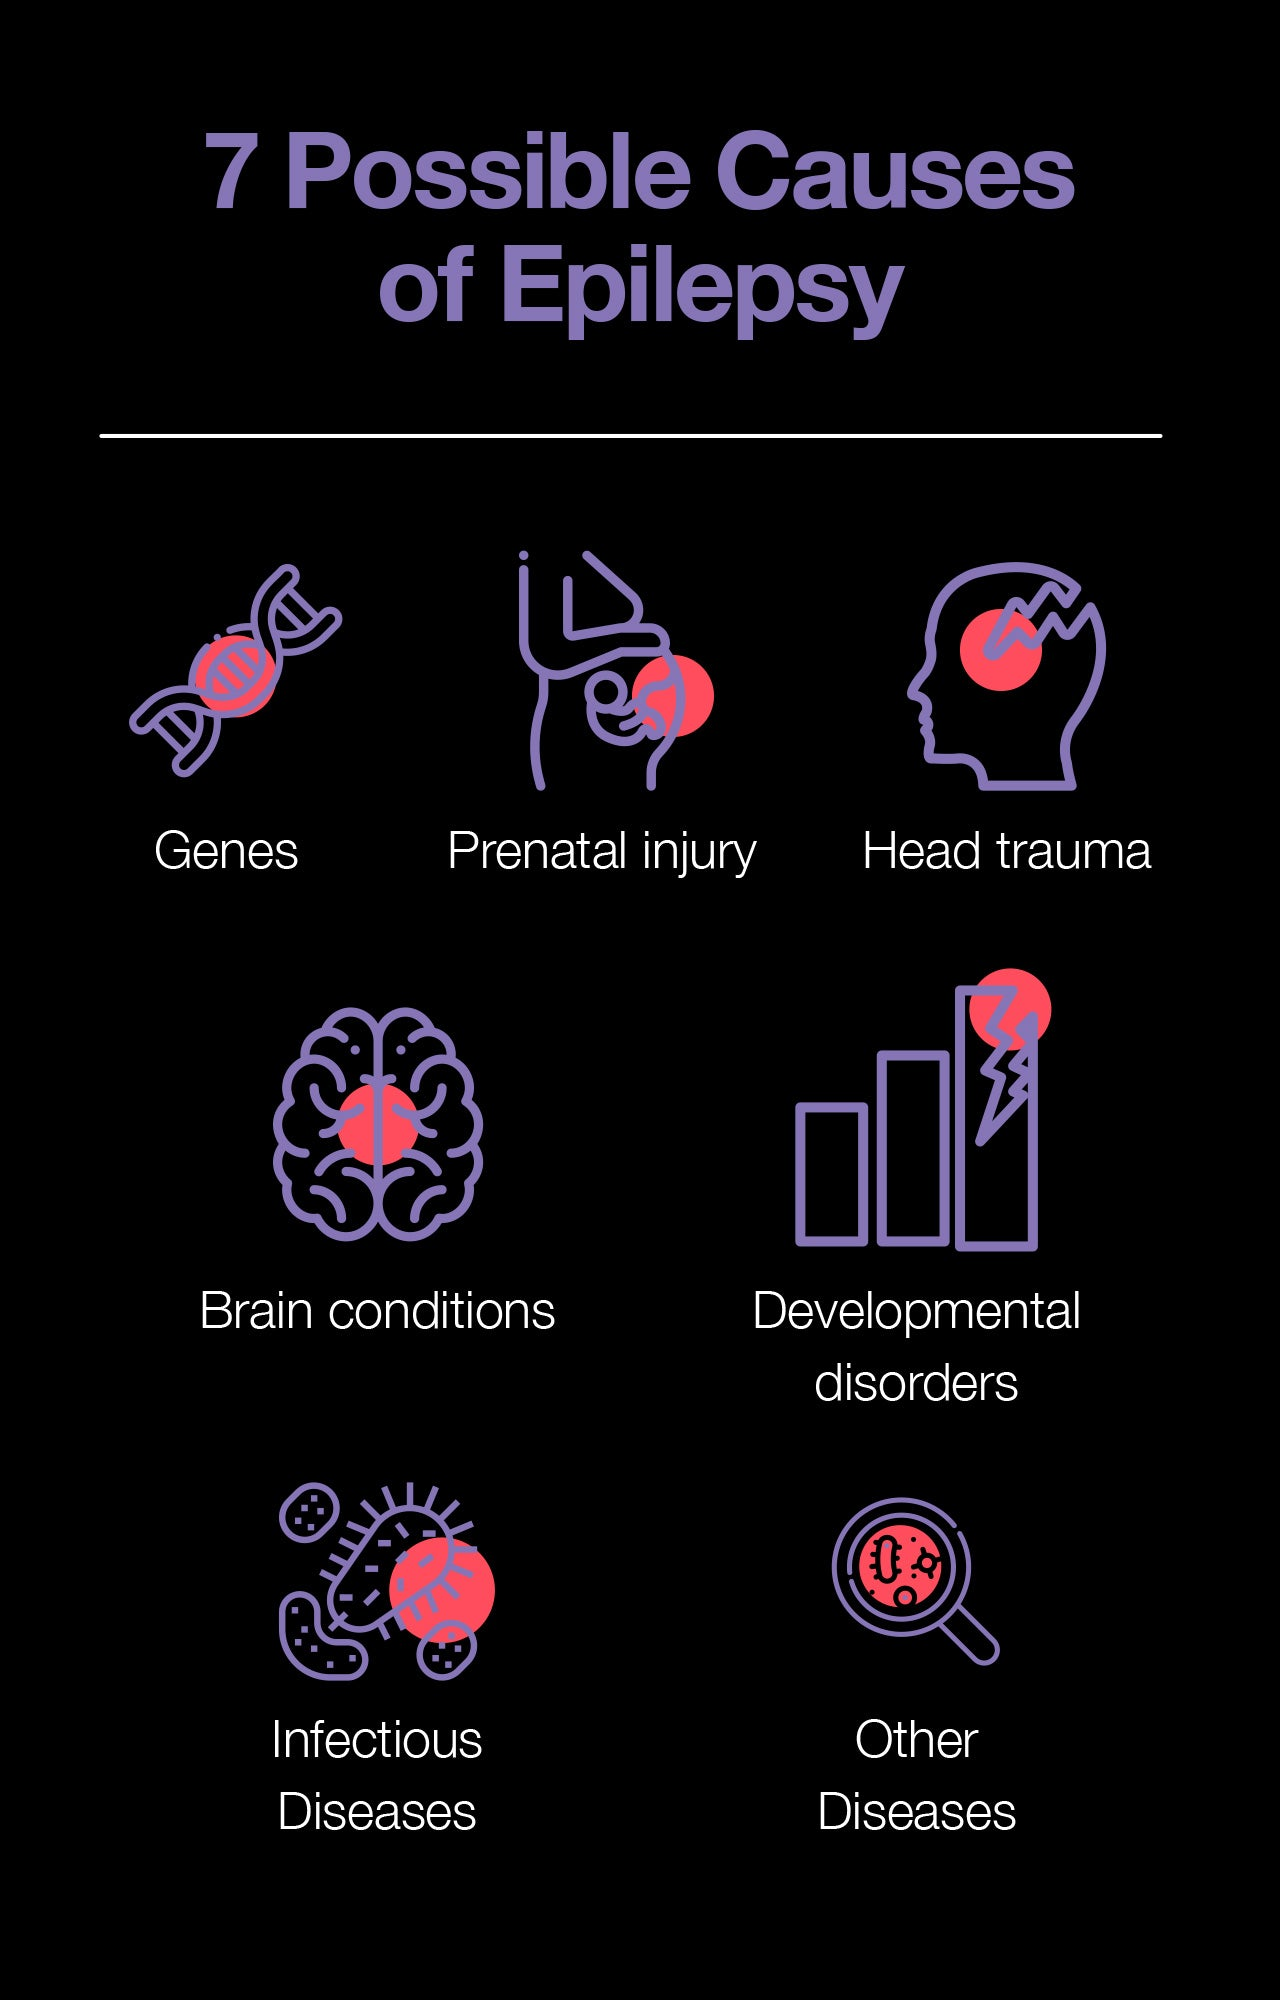 7 Possible Causes Epilepsy